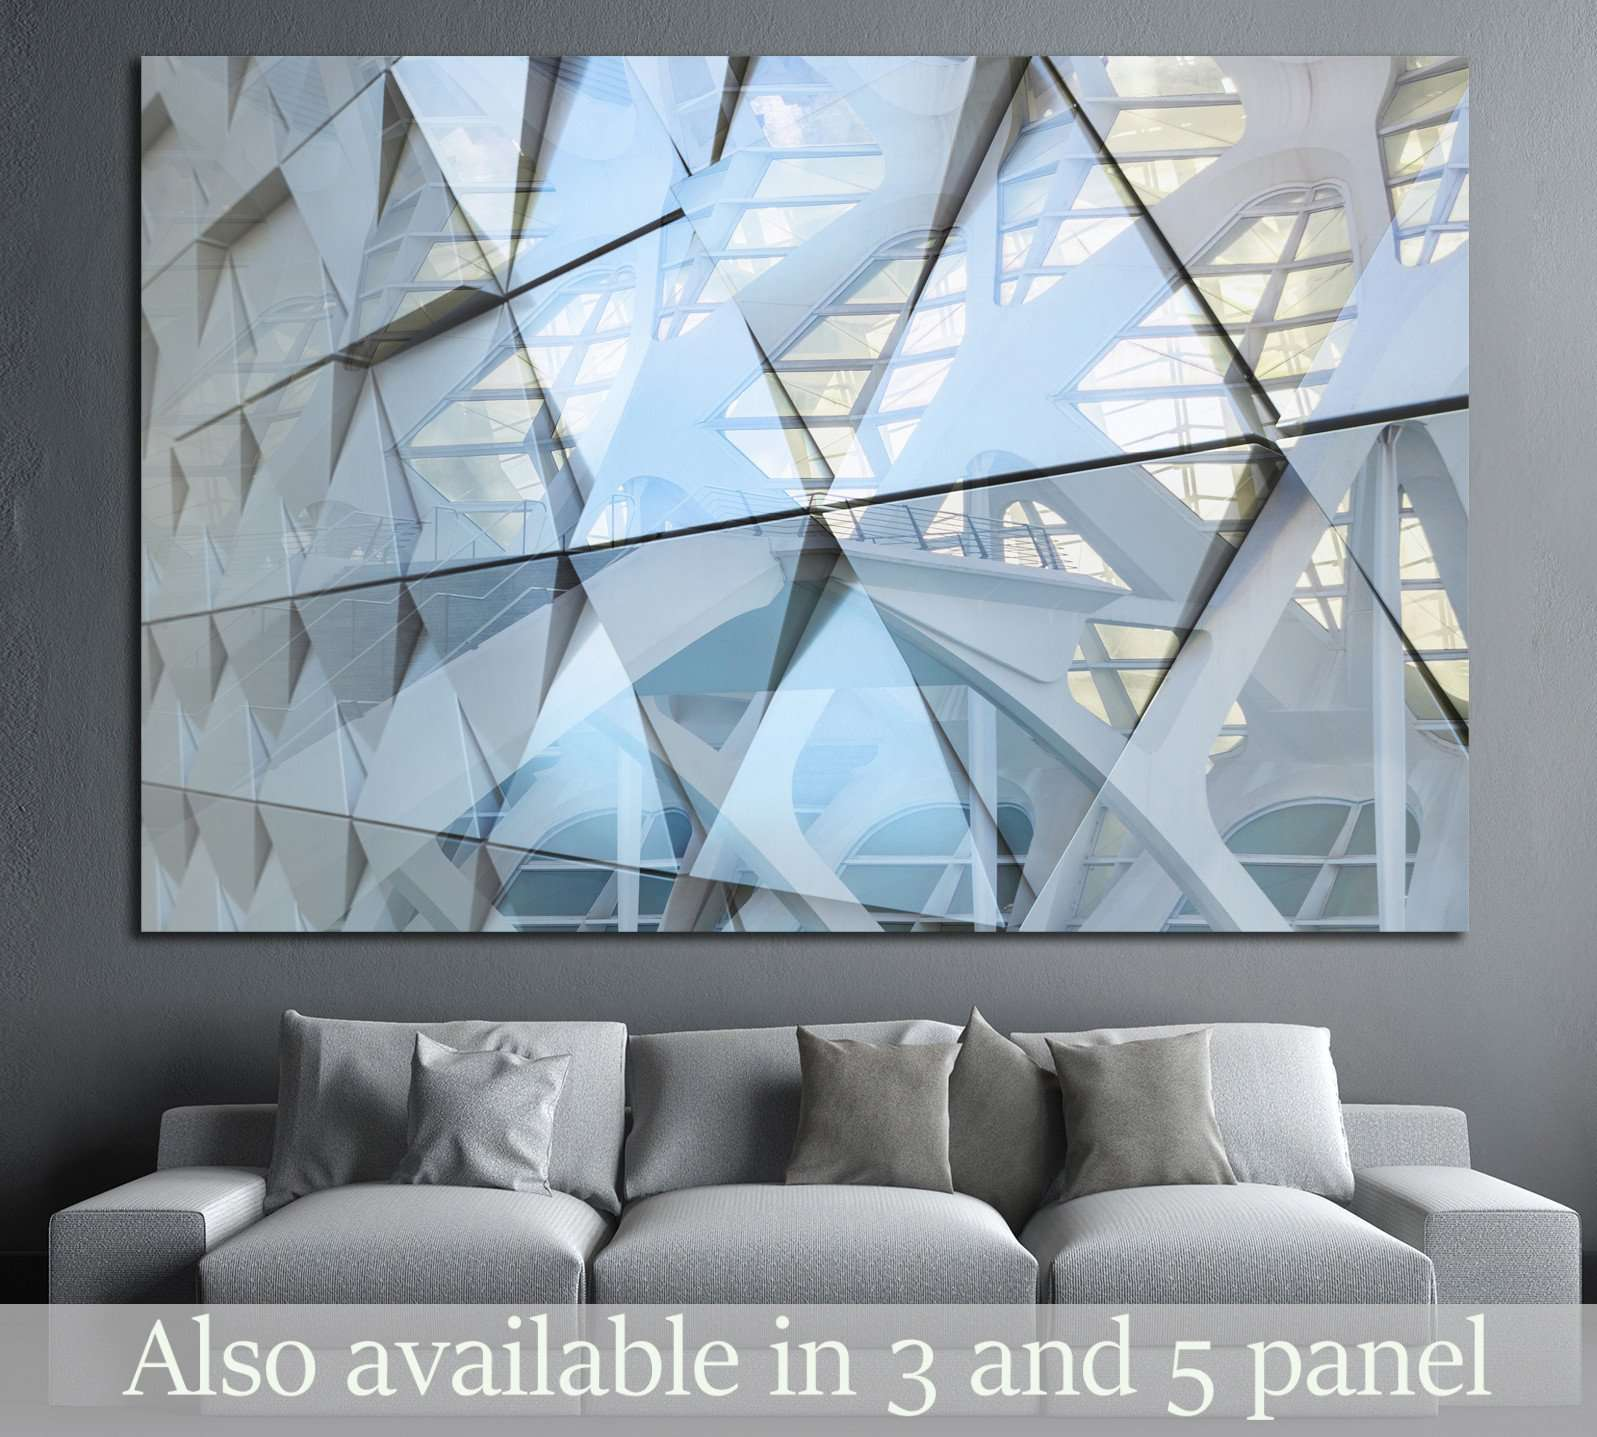 Abstract architectural detail №1601 - canvas print wall art by Zellart